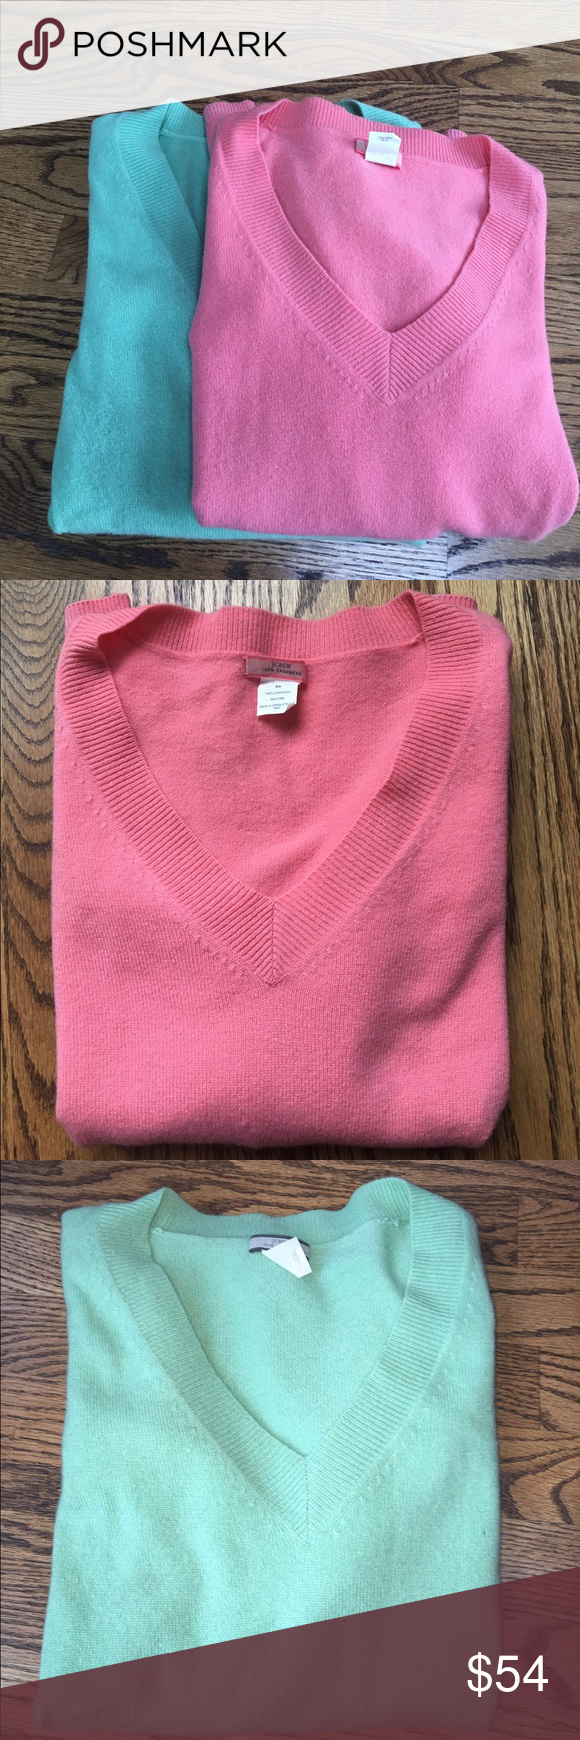 Set of 2 j.crew cashmere v-neck sweaters size XS | D, Set of and ...